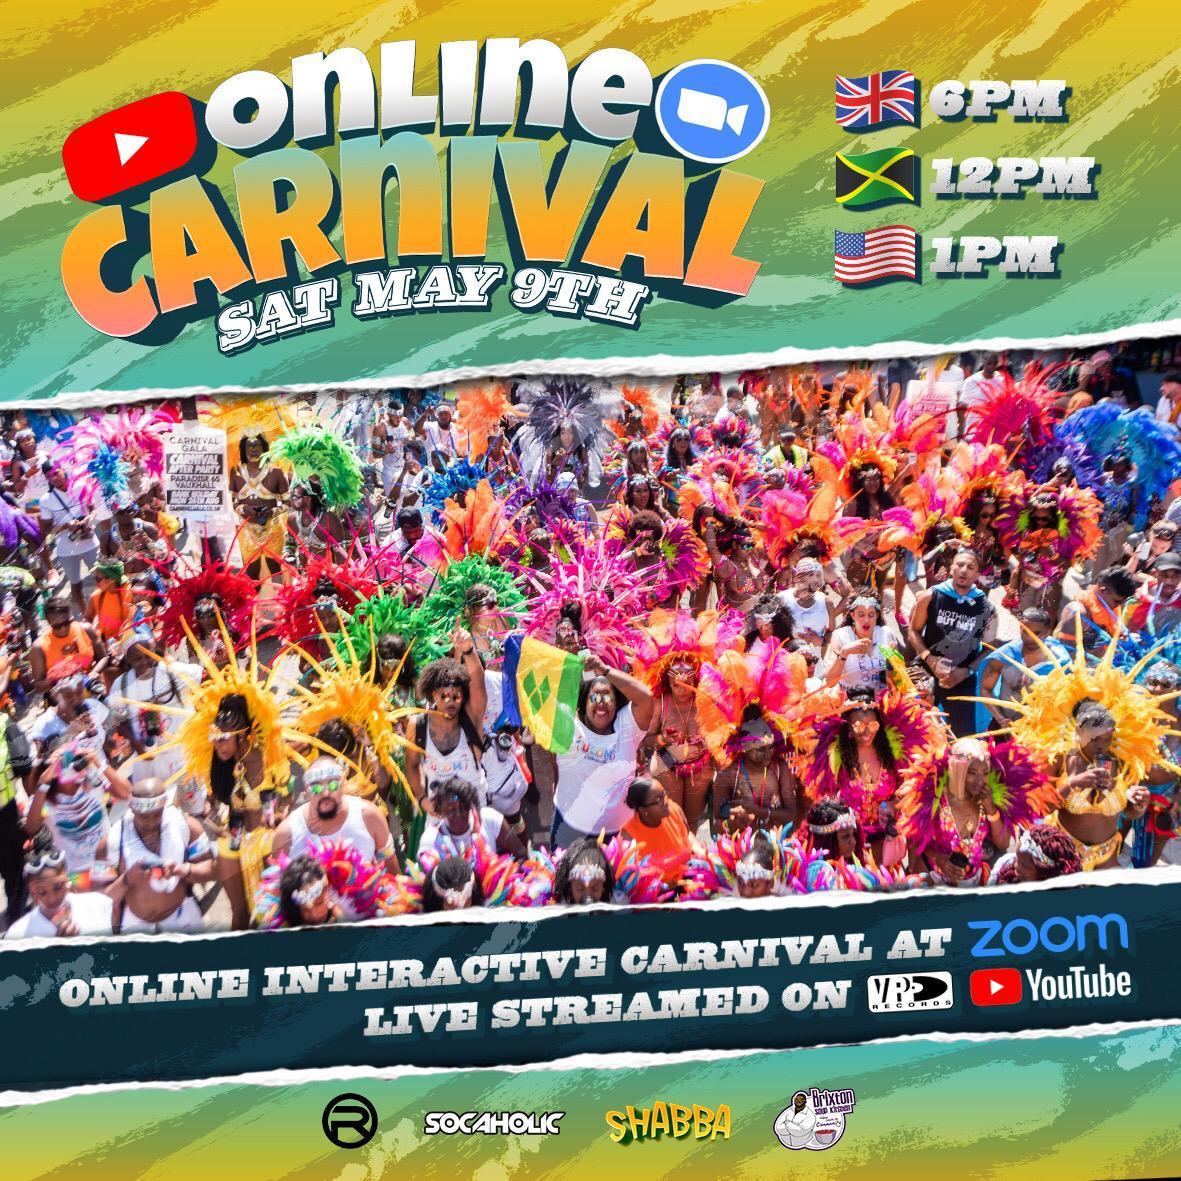 The Online Carnival